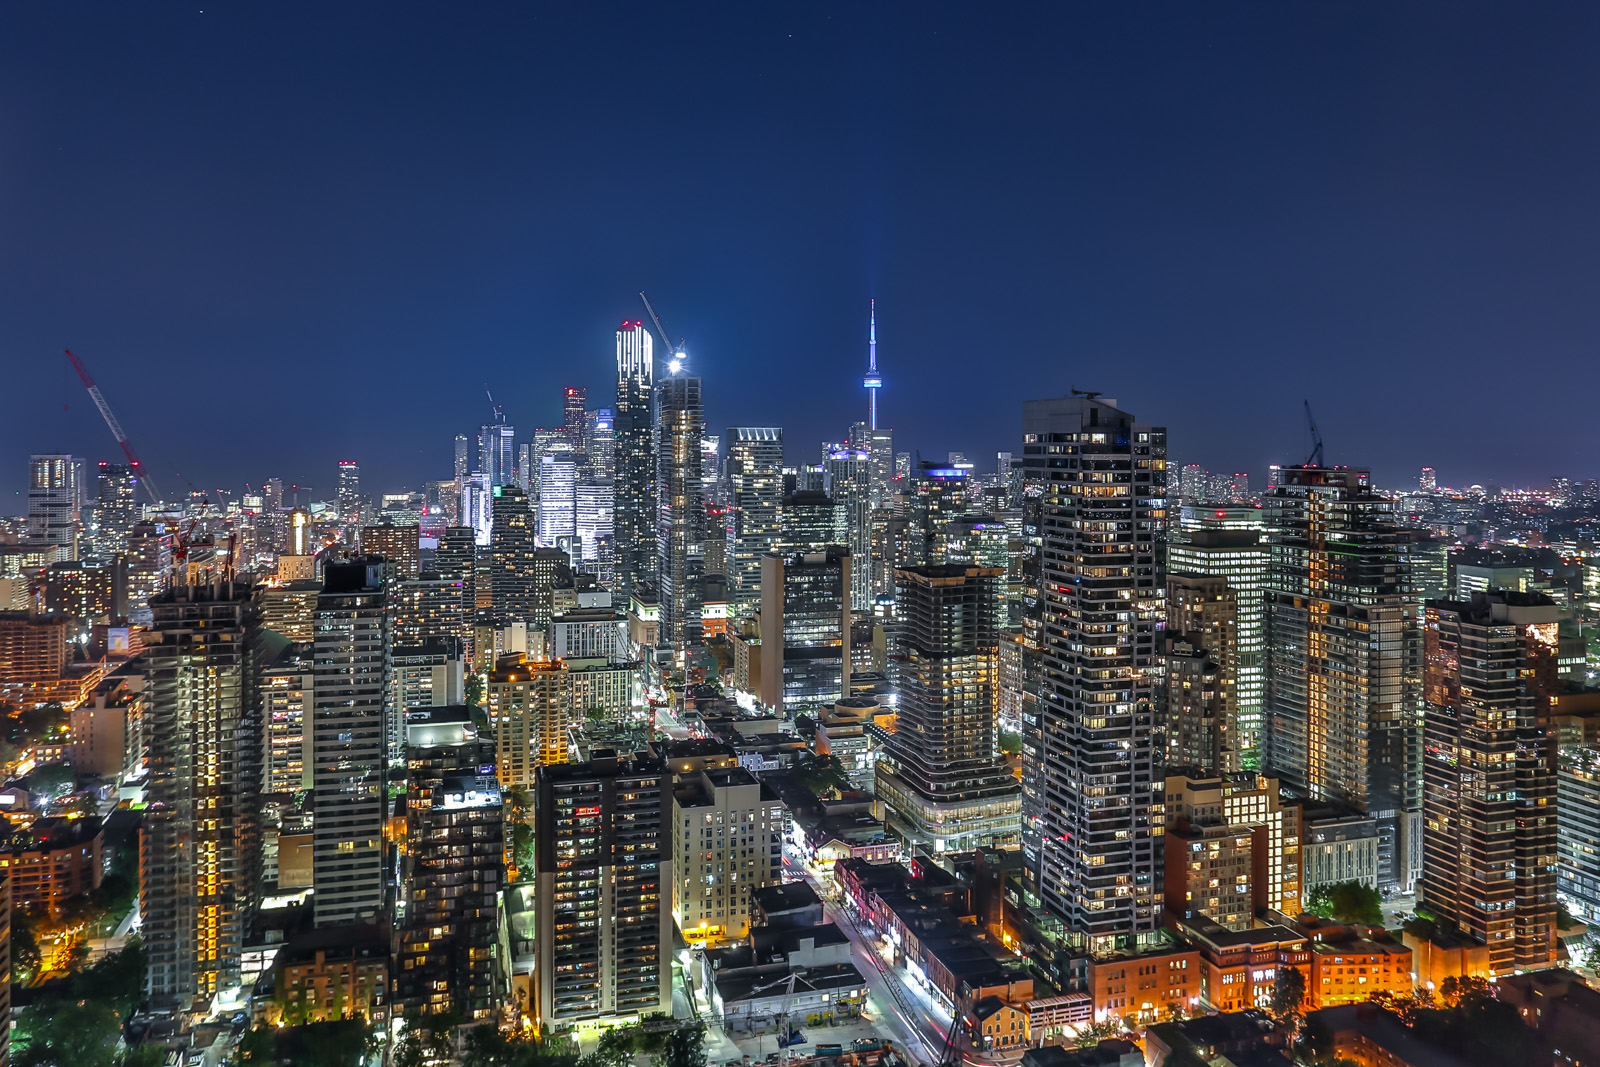 Church-Yonge Corridor at night and city lights. and, first of all, also, another, furthermore, finally, in addition